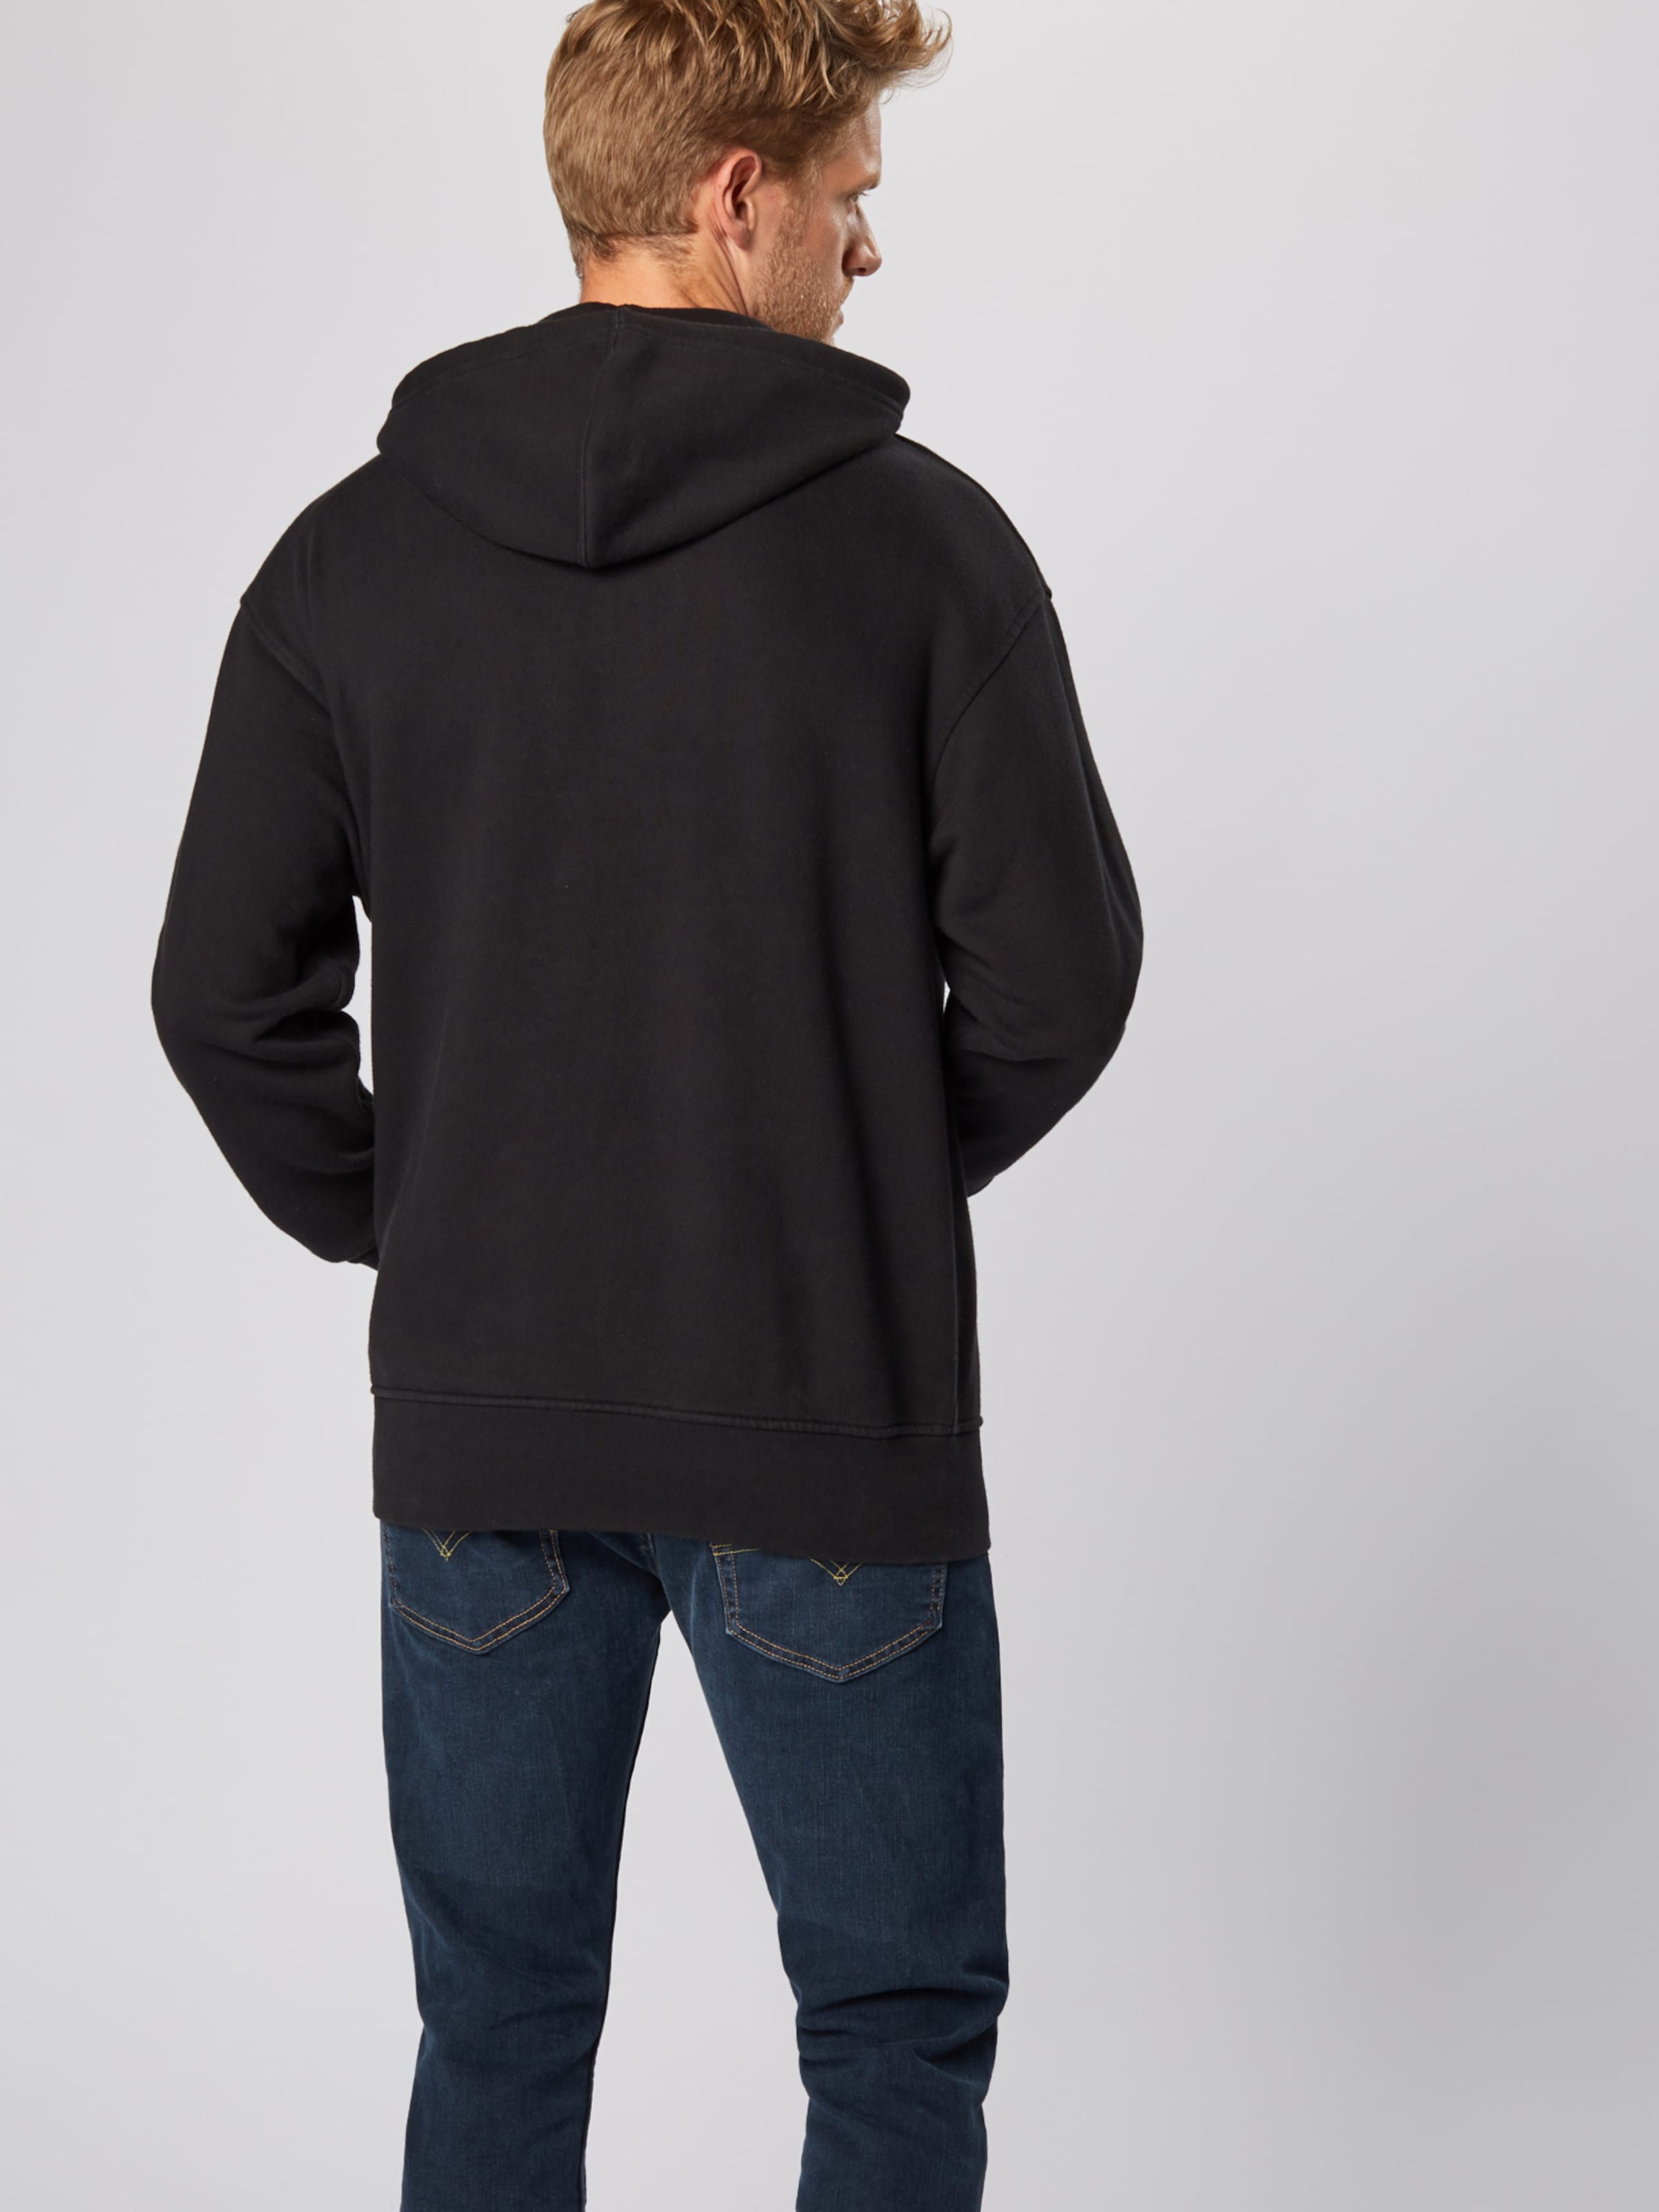 Levi's Noir En Sweat shirt 'oversized Graphic' KJTc3Fl1